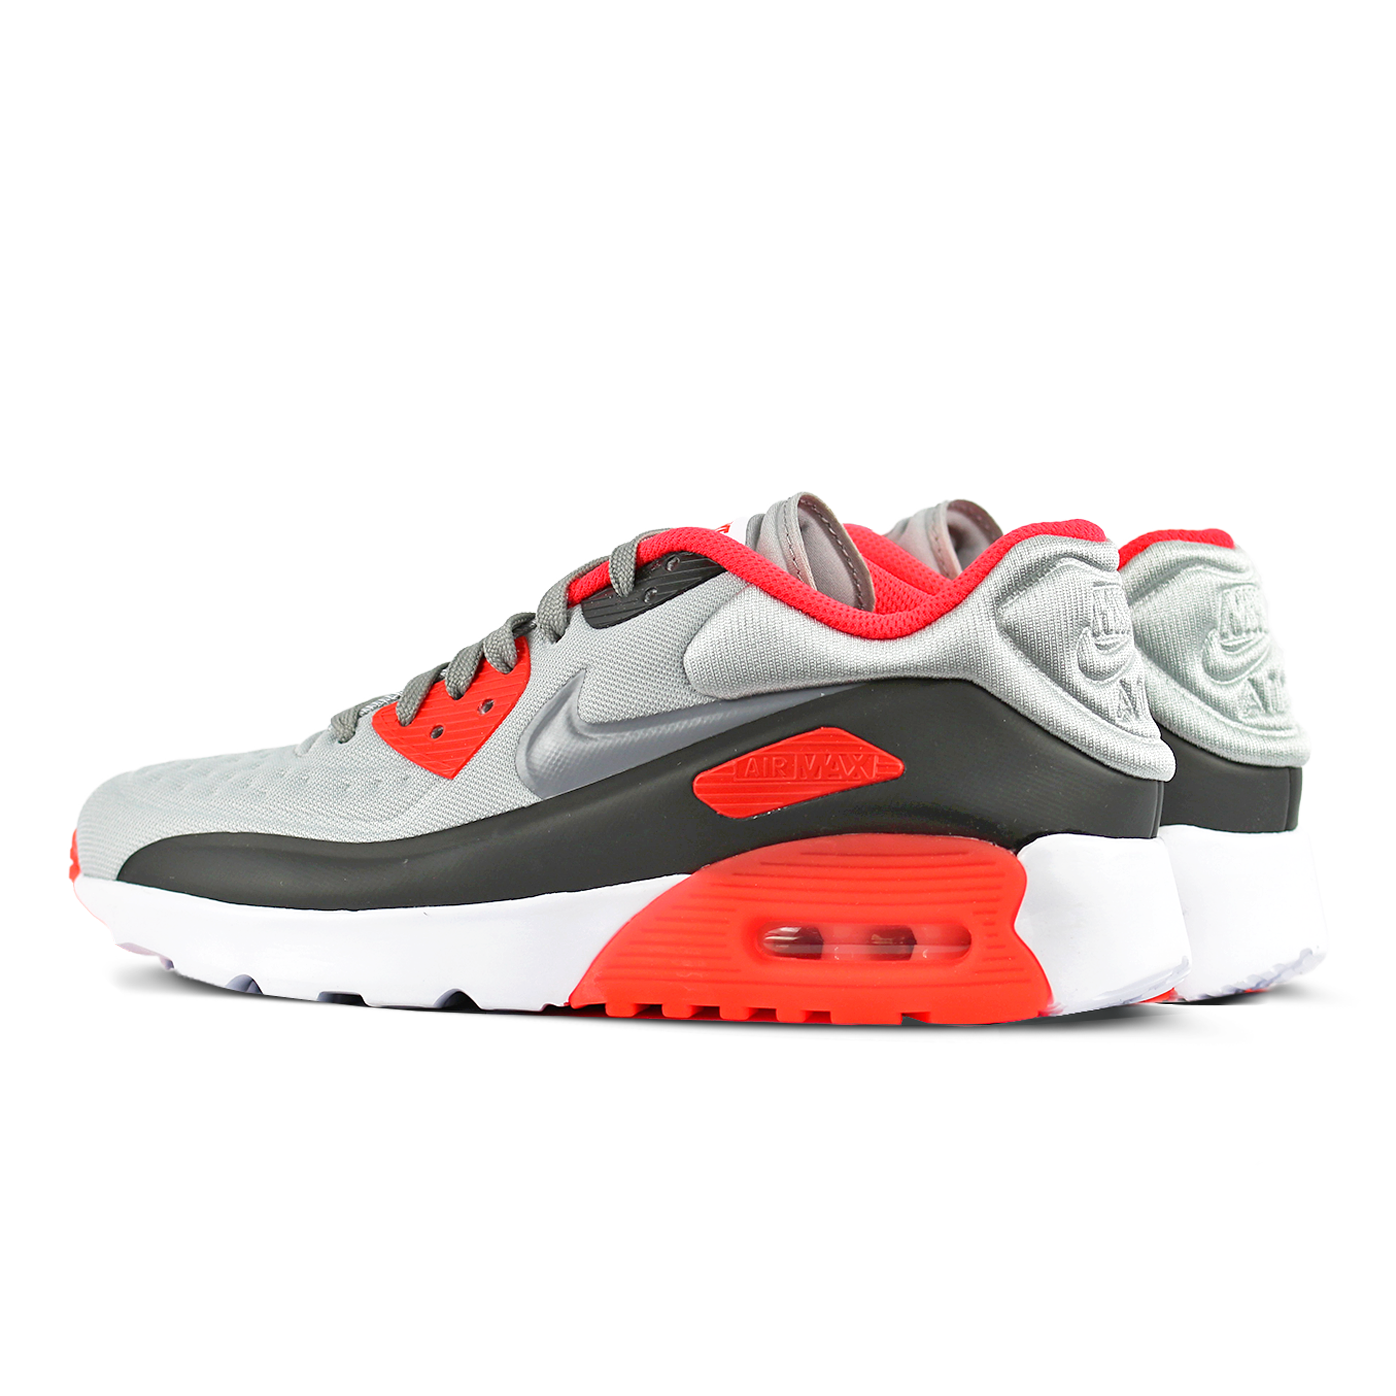 new concept f7e0a 7530e NIKE MEN S AIR MAX 90 ULTRA SE - INFRARED - Lace Up NYC